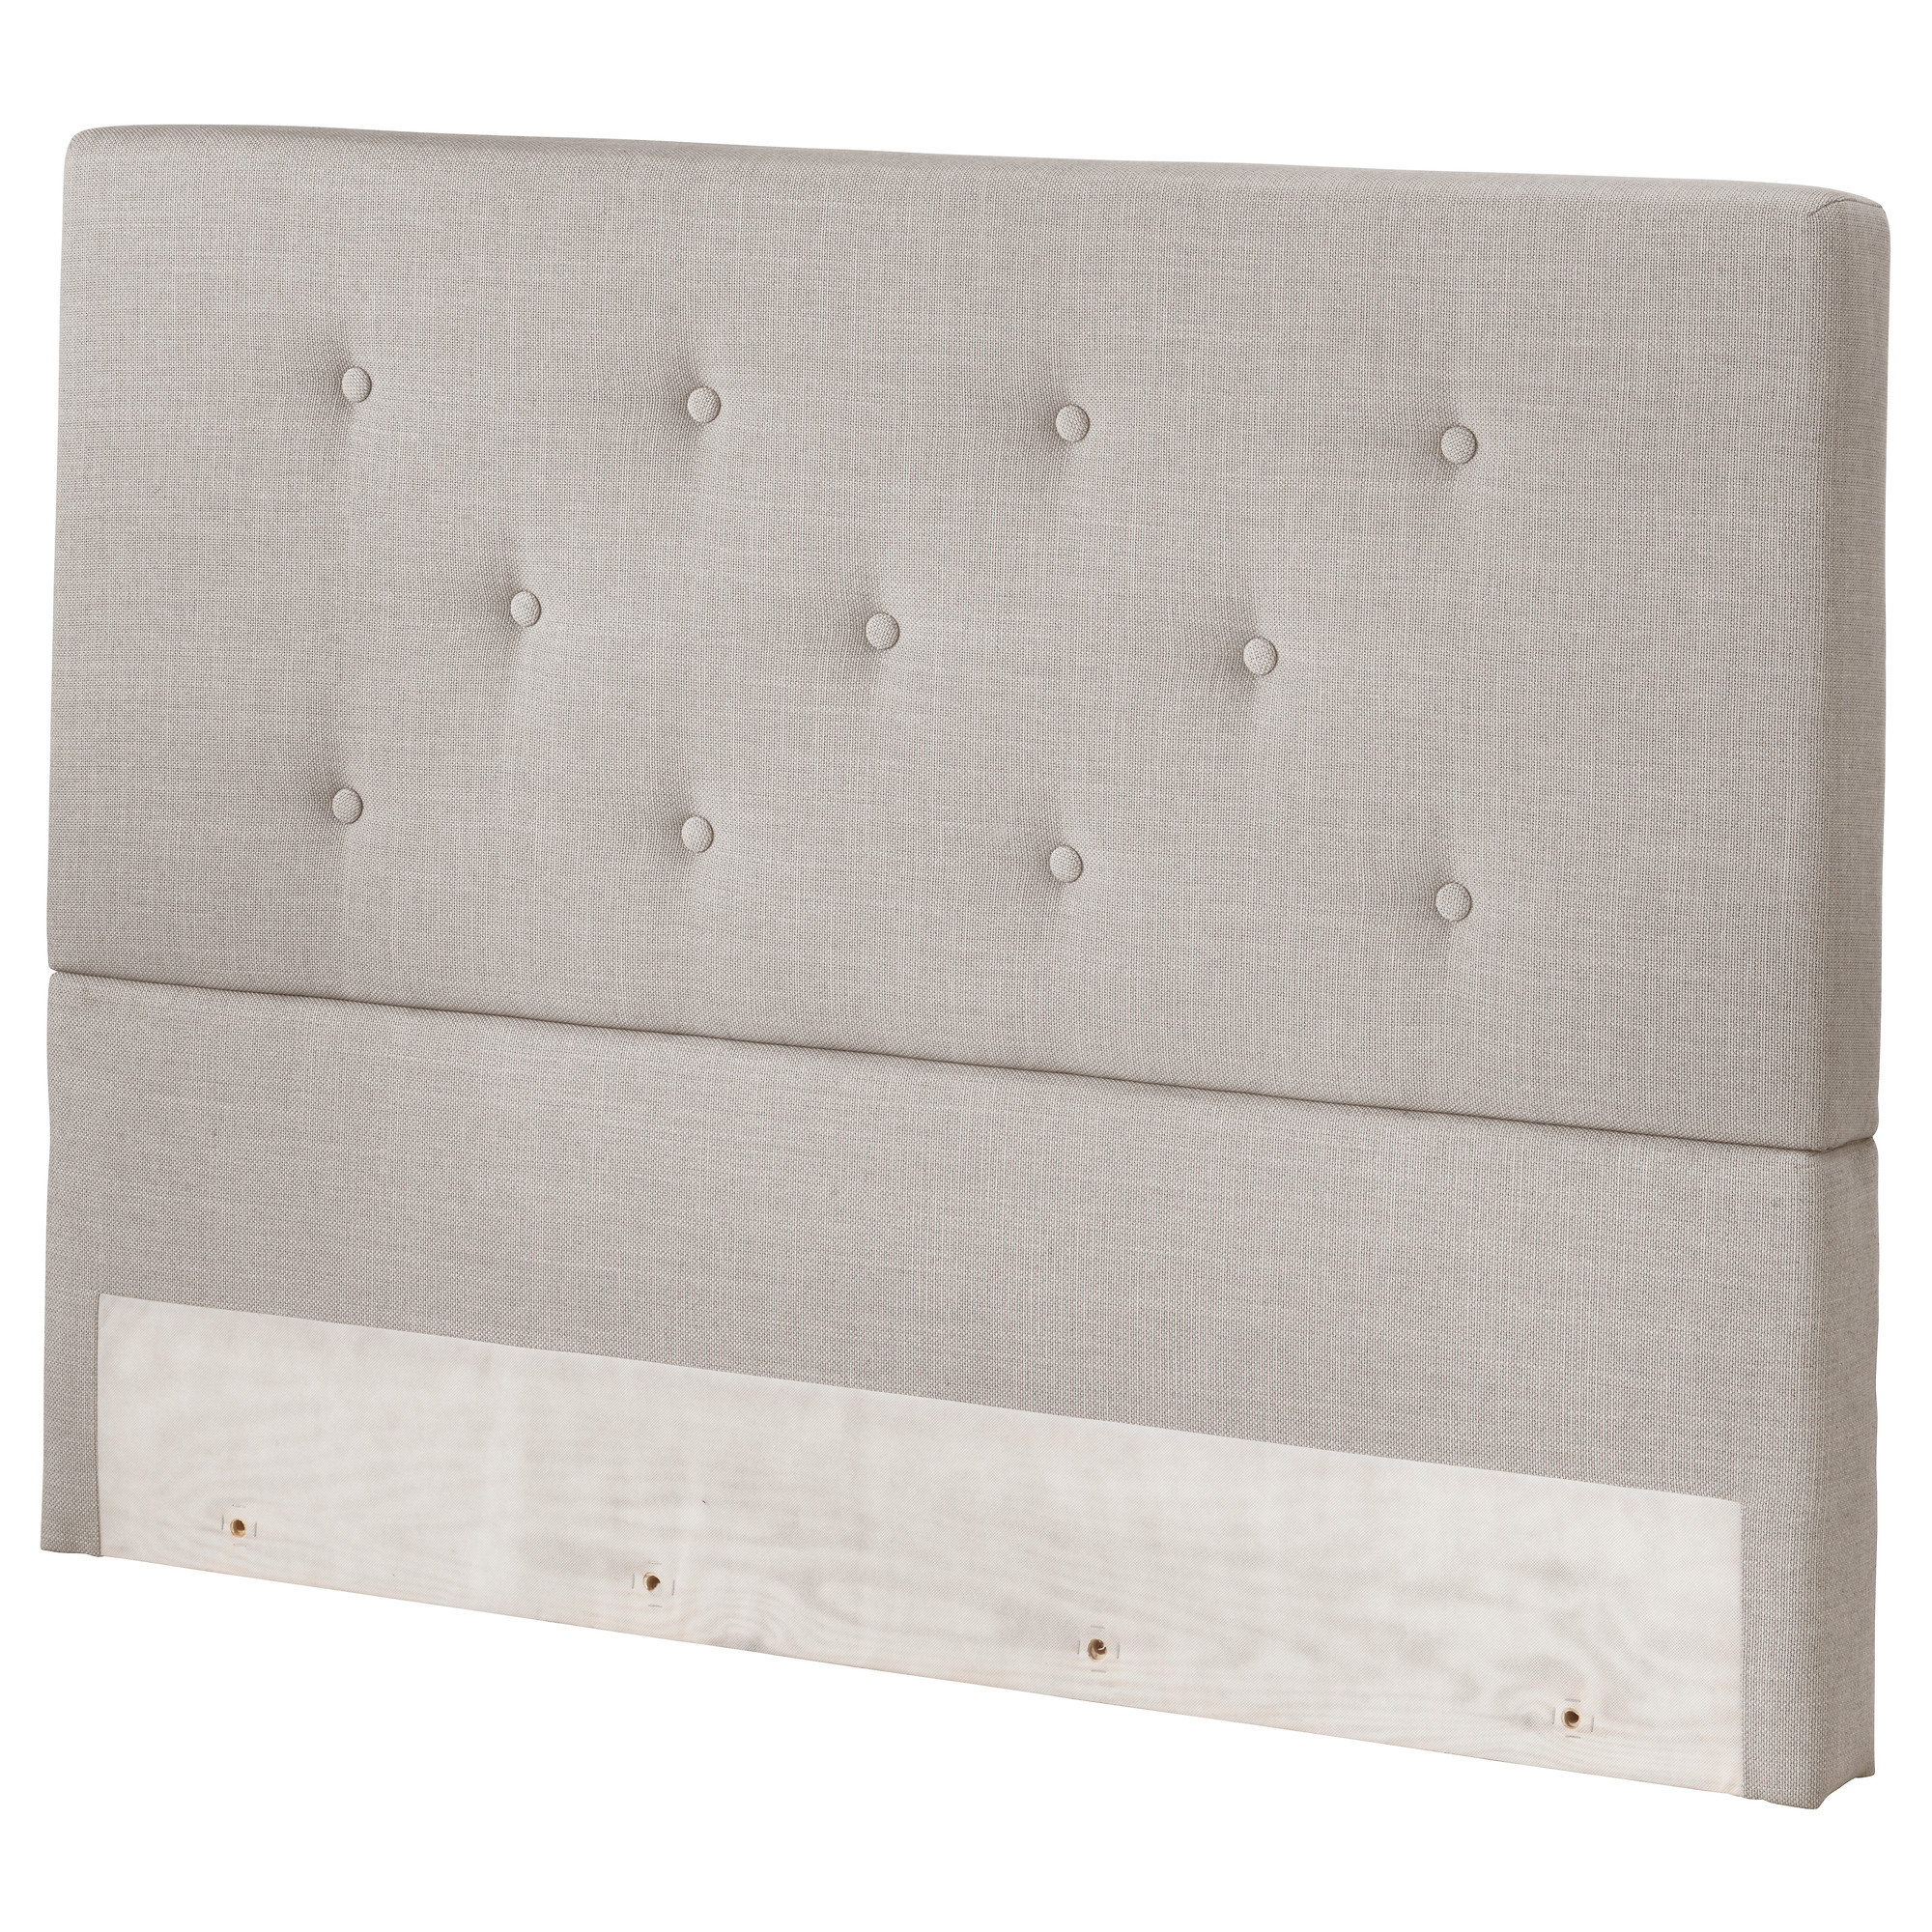 Headboards - Upholstered & Wooden Headboards - IKEA